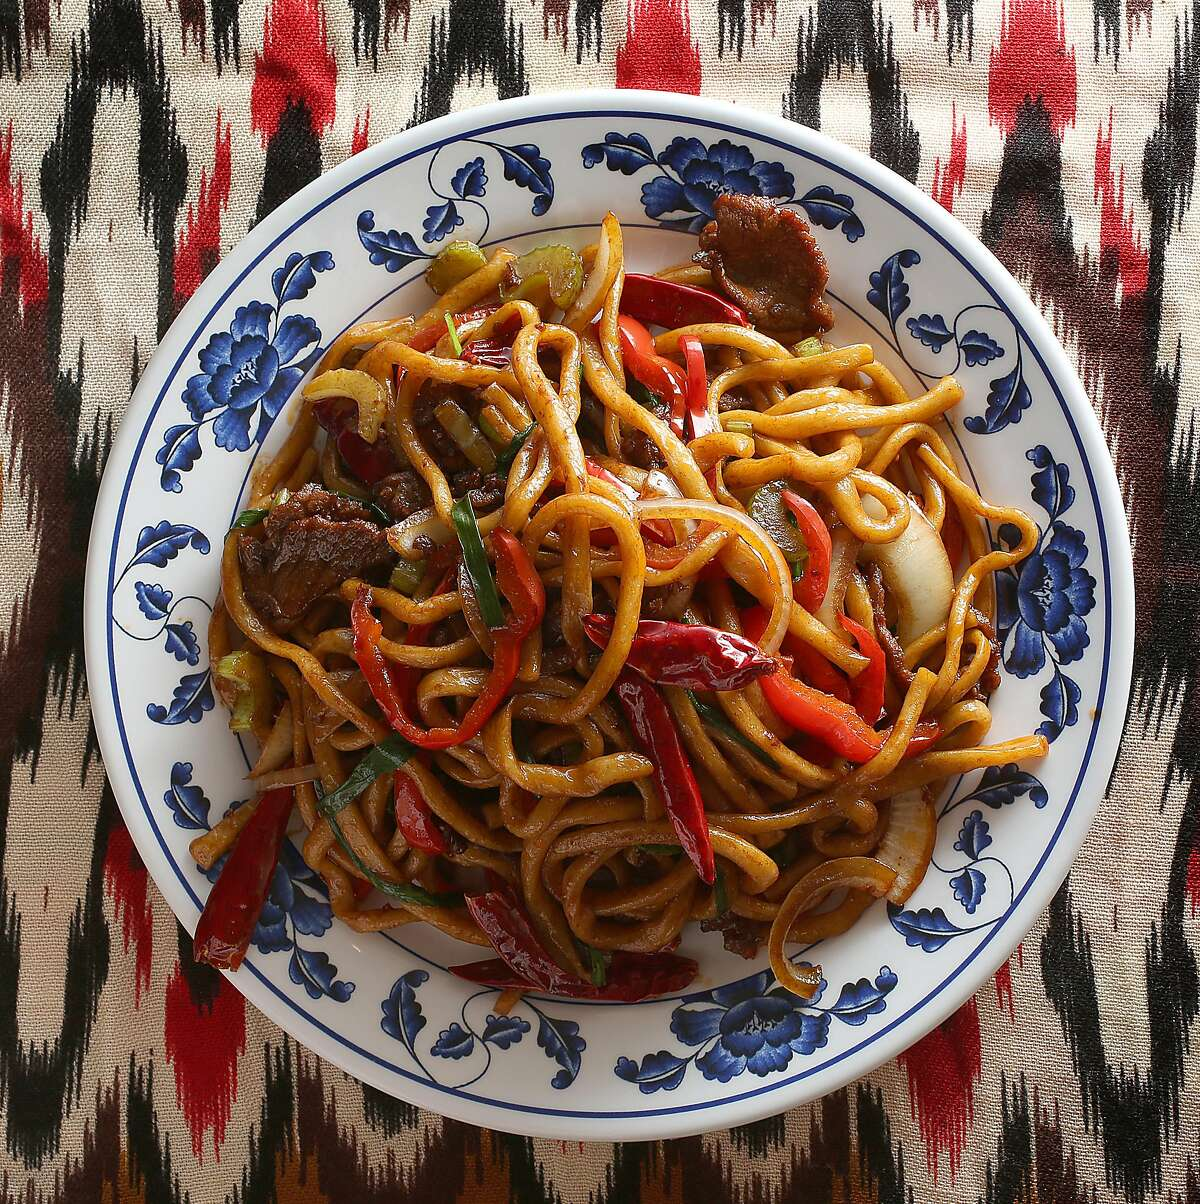 Stir fried noodles with vegetables & beef at Sama Uyghur, one of the only Uyghur (northwest Chinese and Muslim) restaurants in the Bay Area on Monday, December 18, 2017, in Union City, Ca.